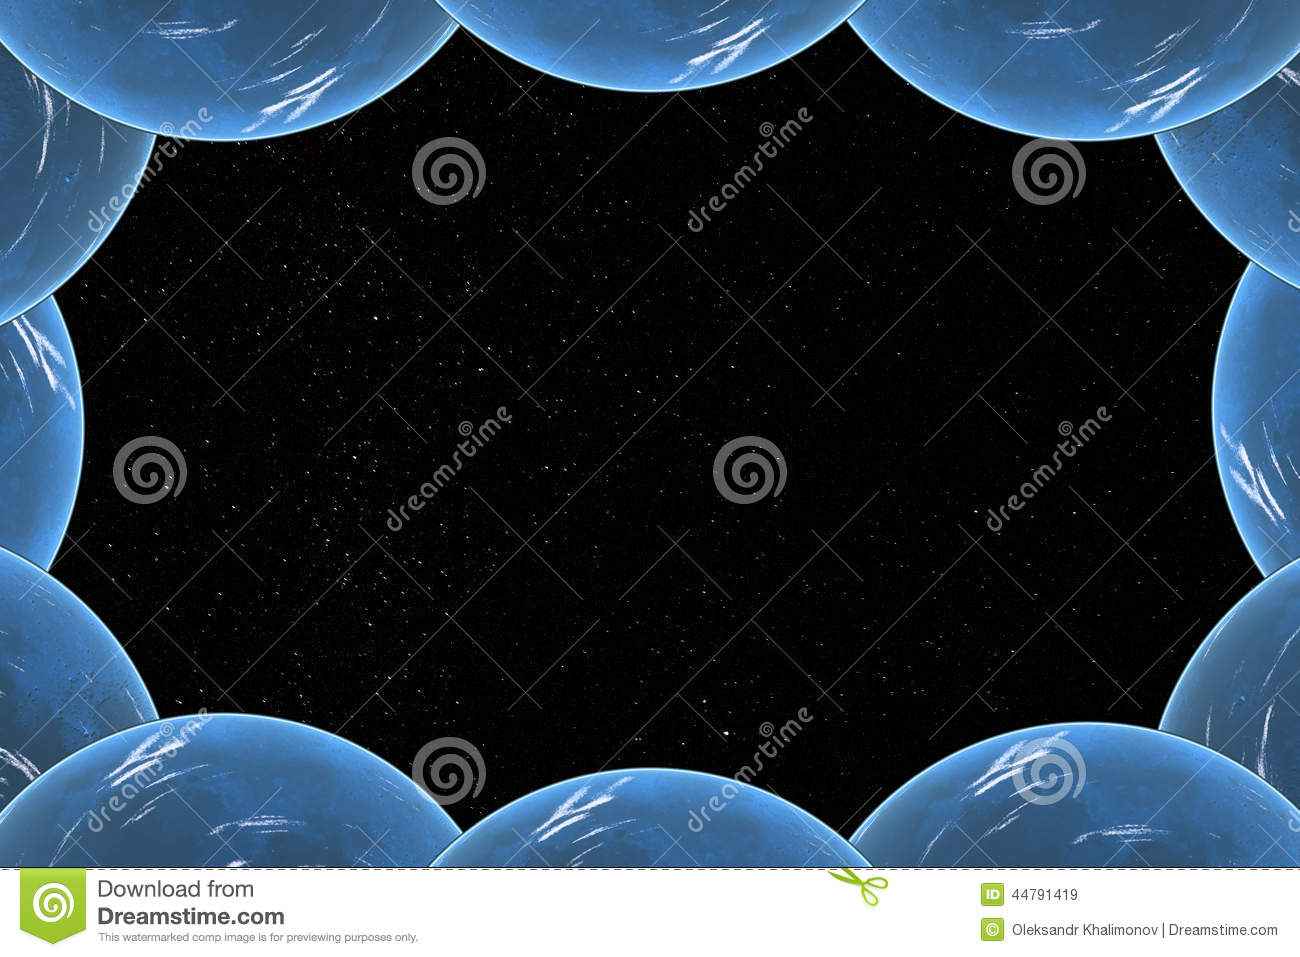 starry sky with planets - photo #27